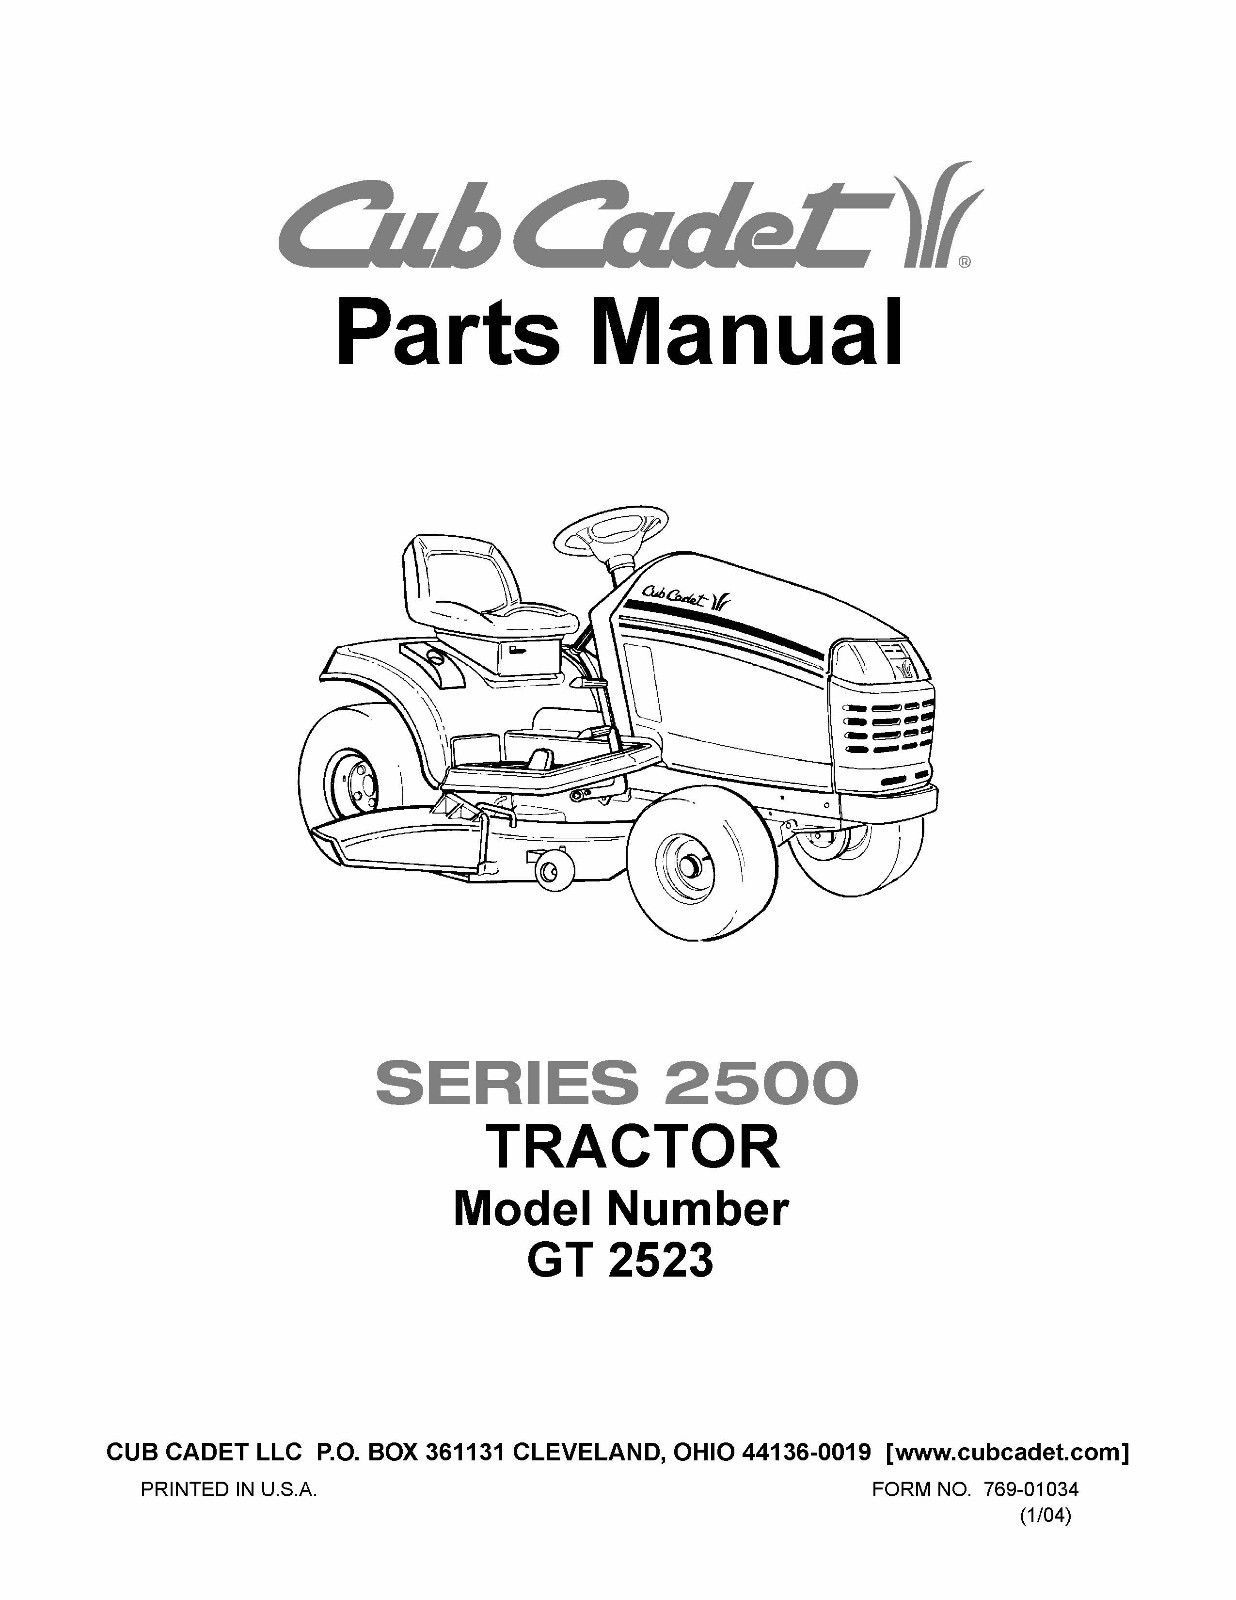 Cub Cadet Parts Manual Model No. GT 2523